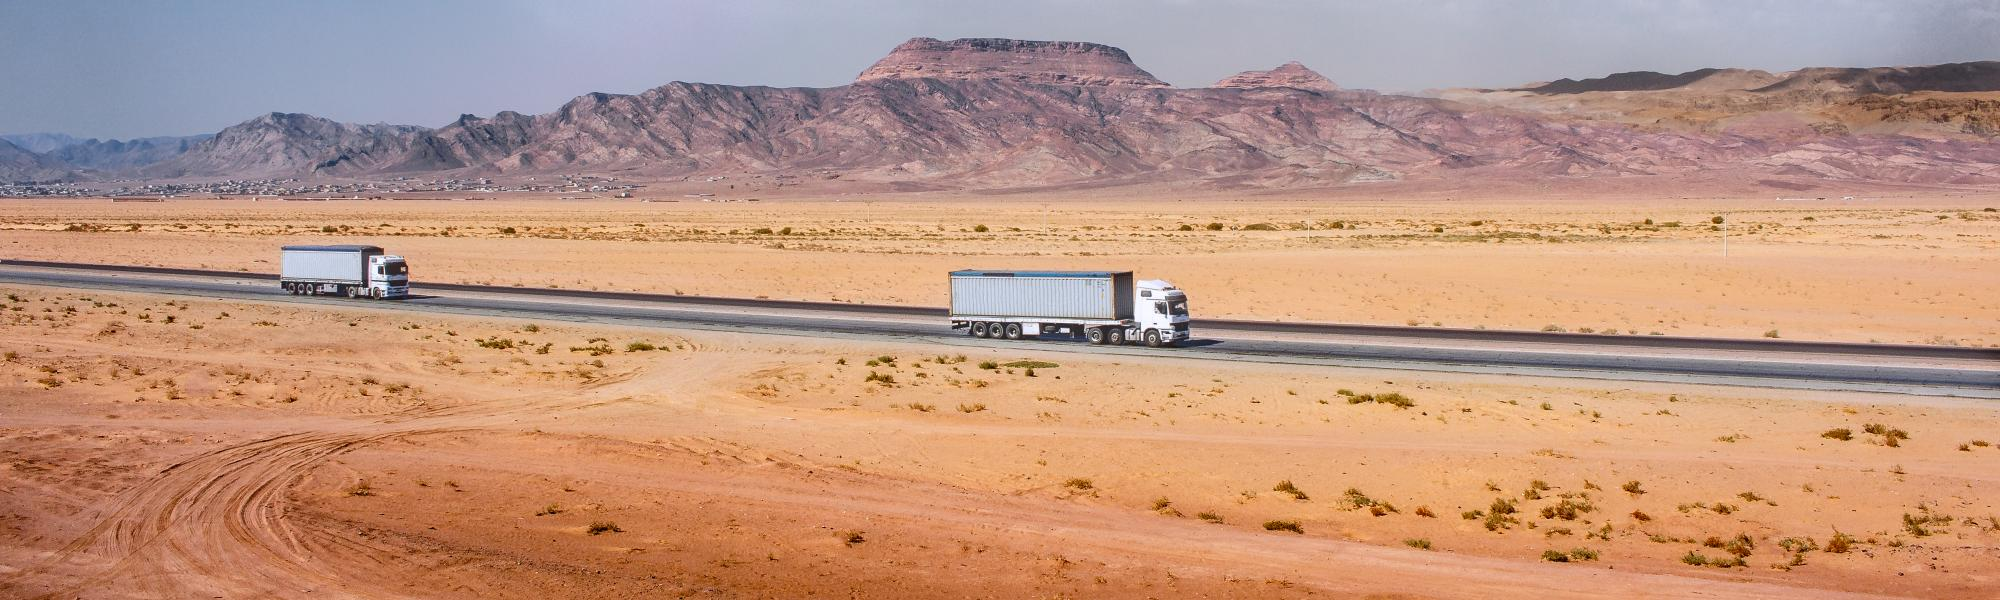 CNN reports on vital role of transport and TIR for GCC to recover from COVID-19